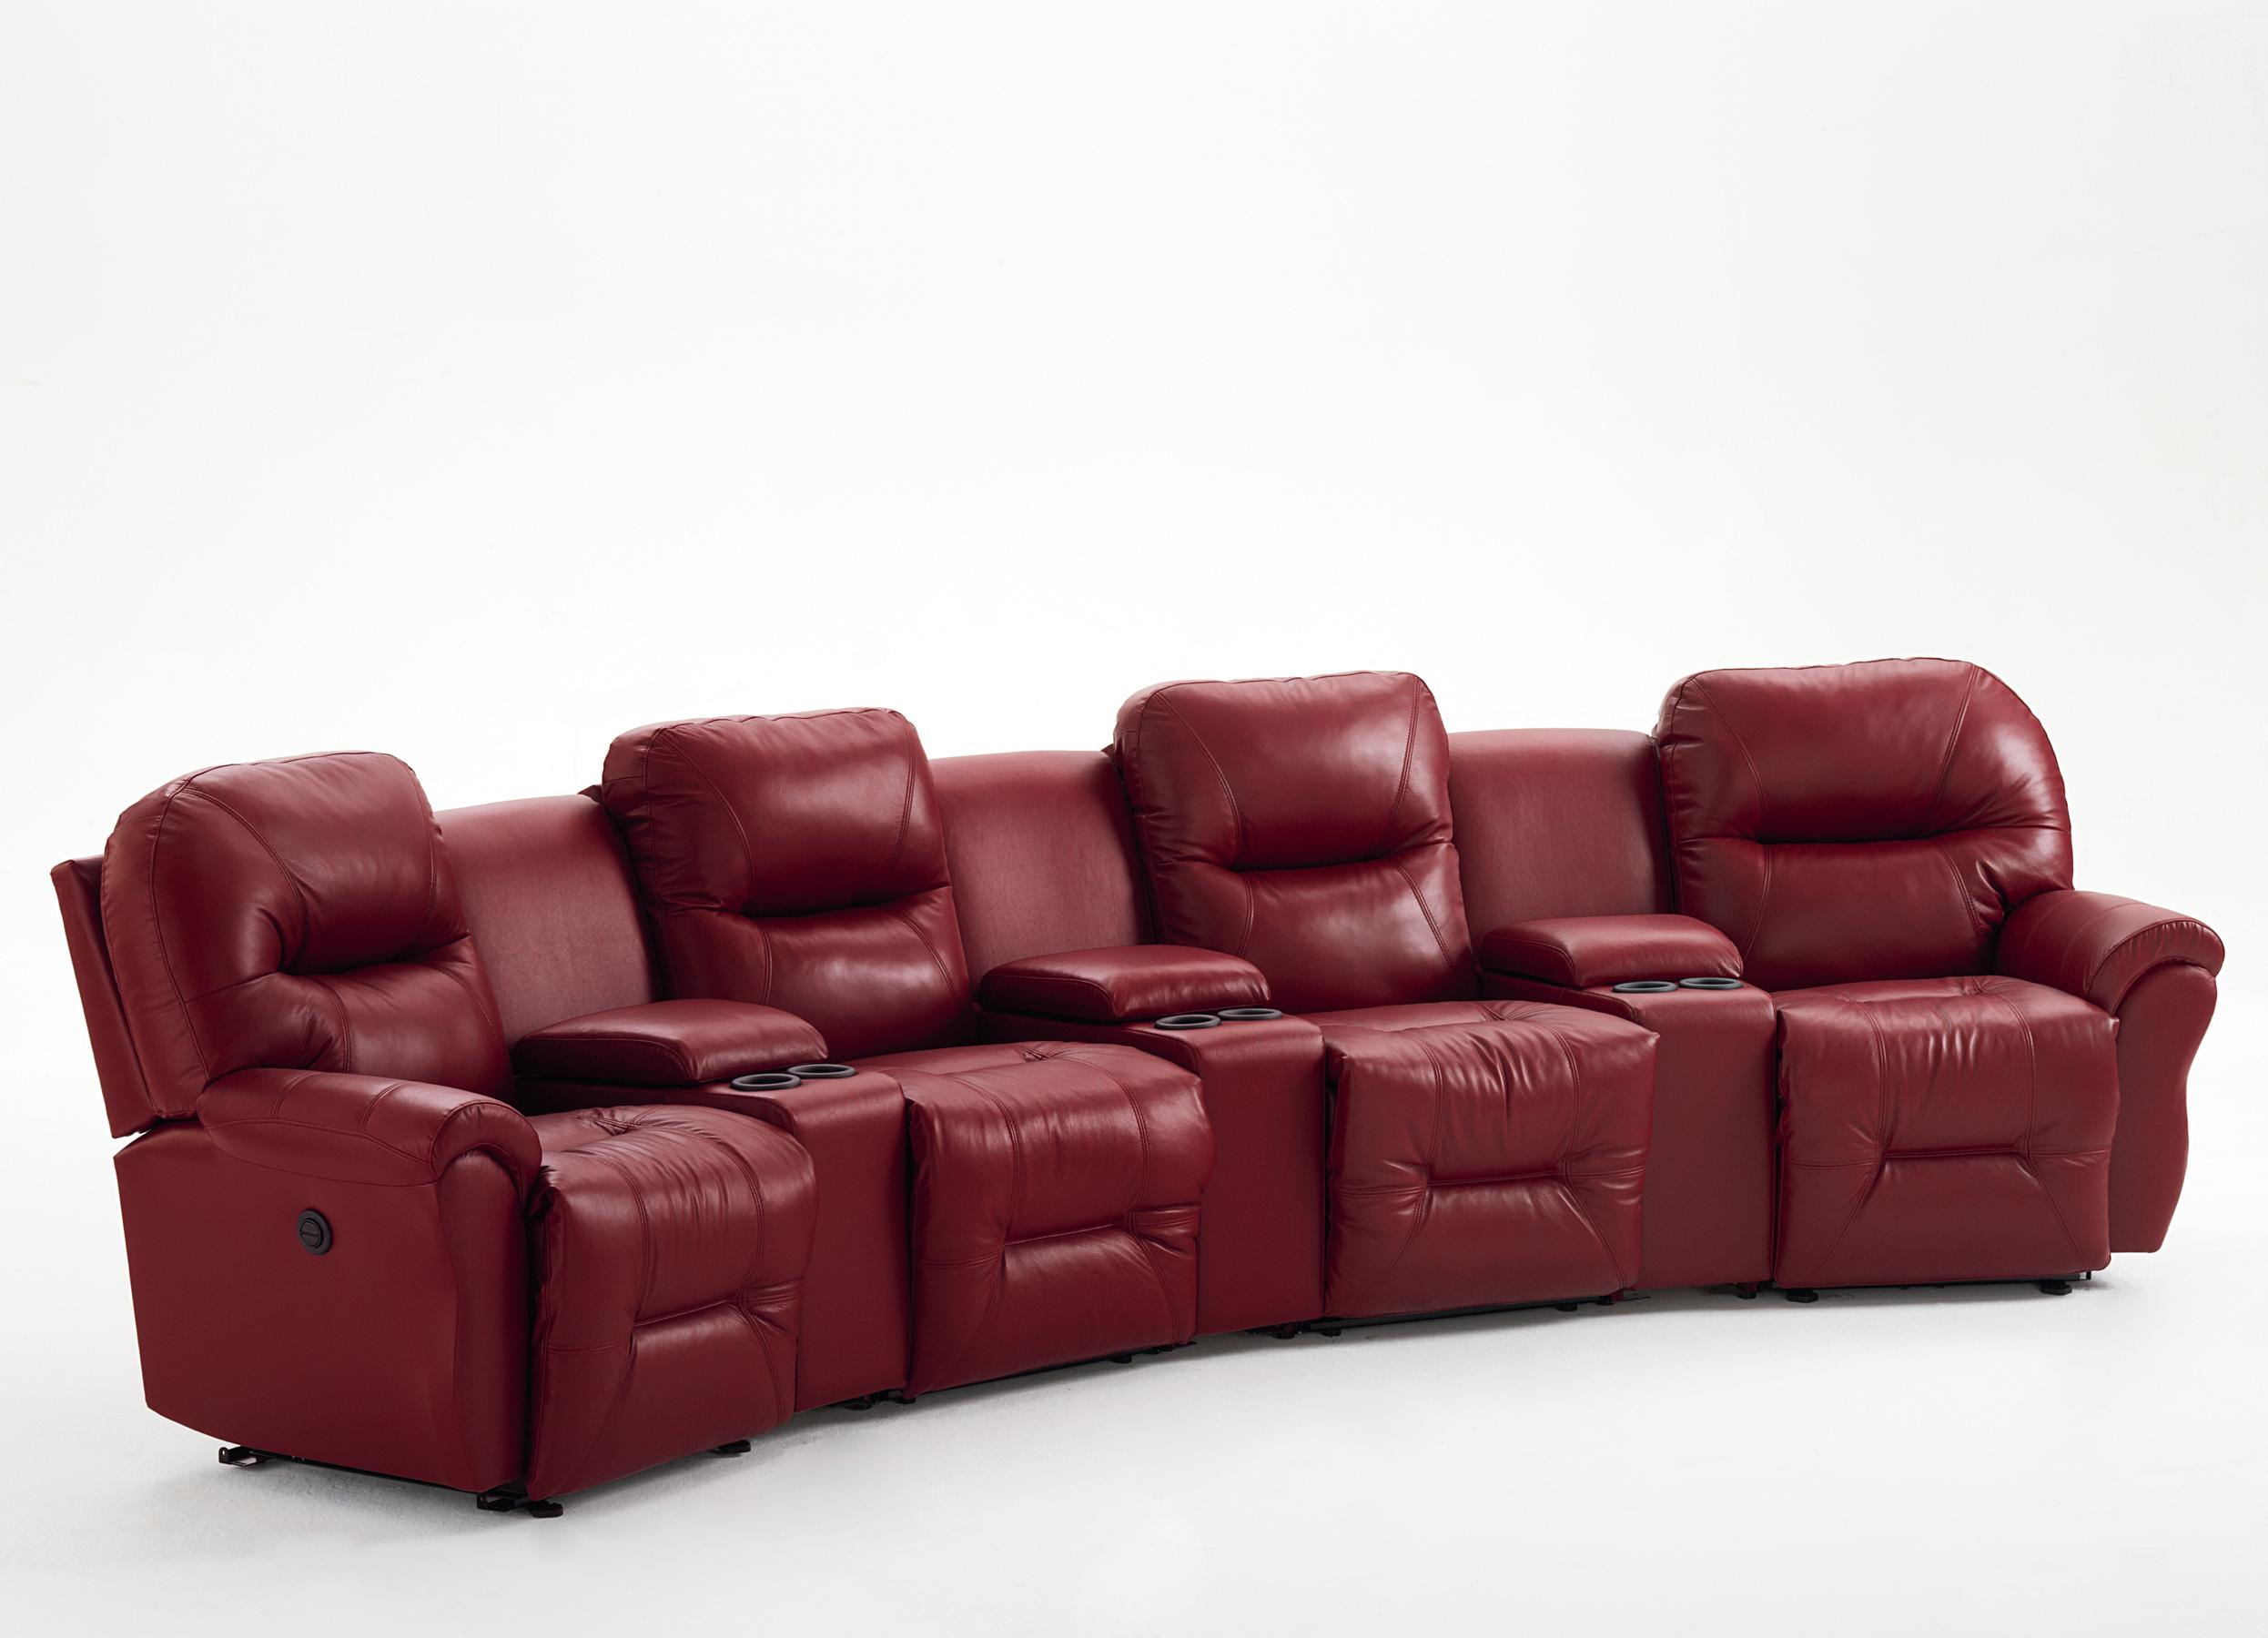 4-Seater Power Reclining Home Theater Group & 4-Seater Power Reclining Home Theater Group by Best Home ... islam-shia.org